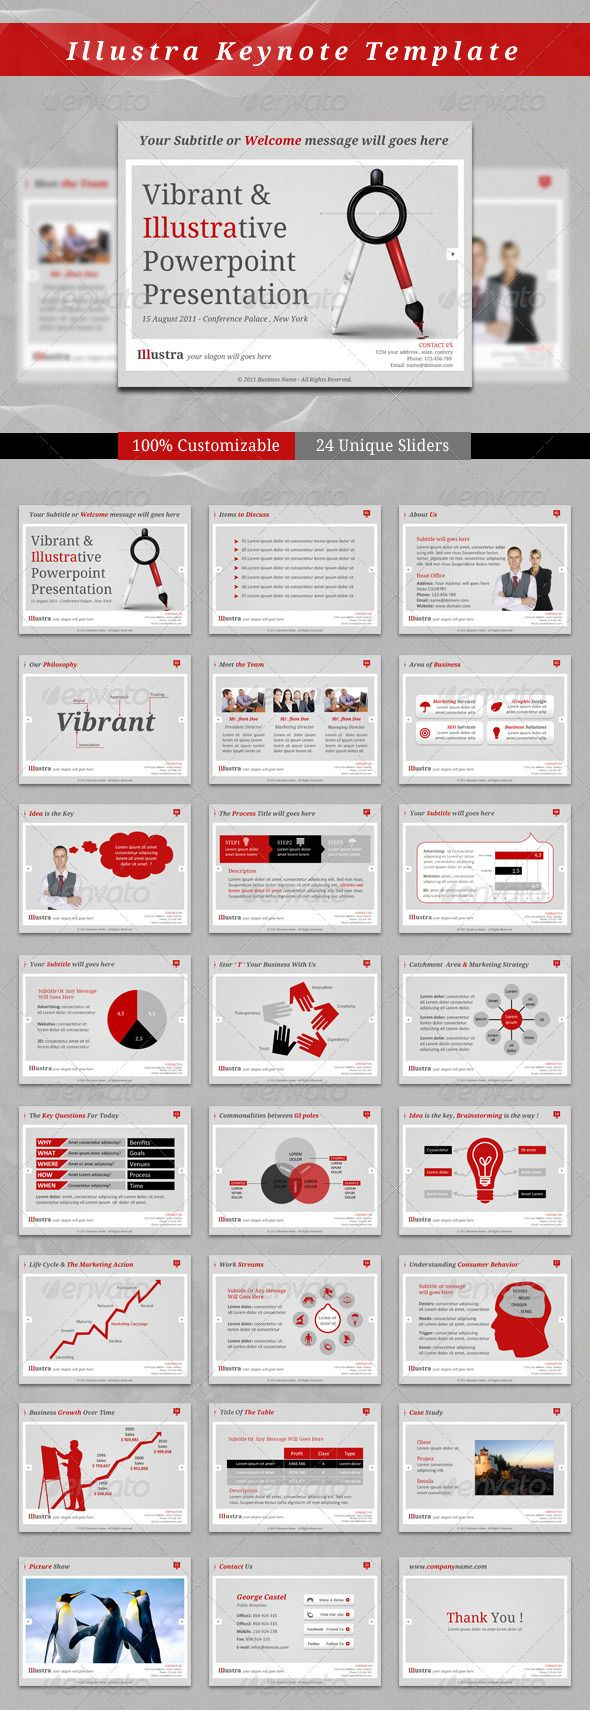 60 best powerpoint images on pinterest ppt design presentation illustra keynote template toneelgroepblik